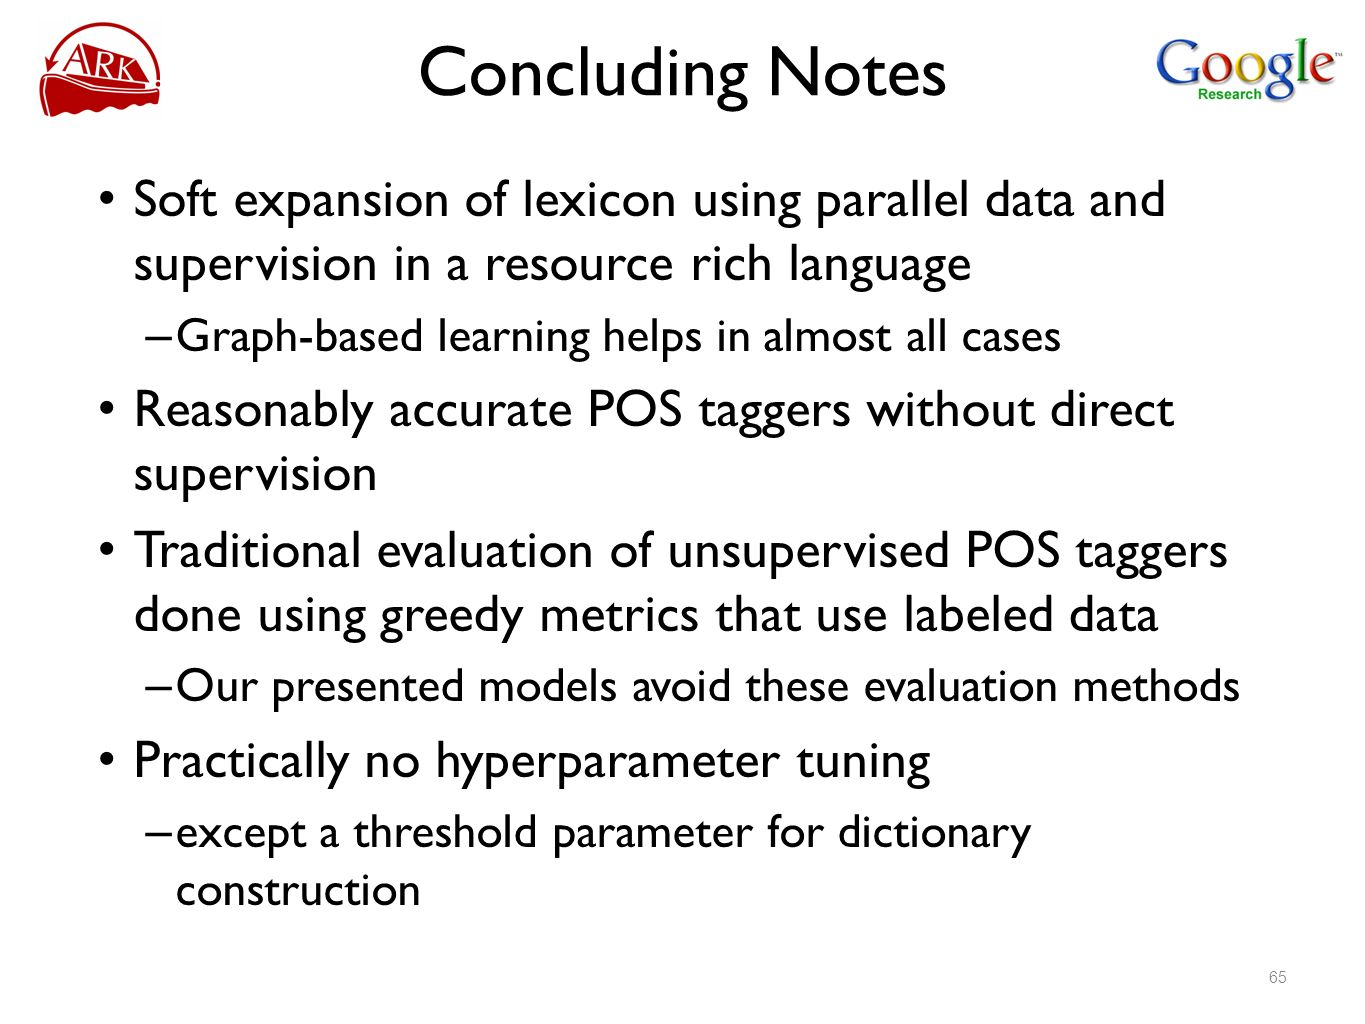 Concluding Notes Soft expansion of lexicon using parallel data and supervision in a resource rich language – Graph-based learning helps in almost all cases Reasonably accurate POS taggers without direct supervision Traditional evaluation of unsupervised POS taggers done using greedy metrics that use labeled data – Our presented models avoid these evaluation methods Practically no hyperparameter tuning – except a threshold parameter for dictionary construction 65